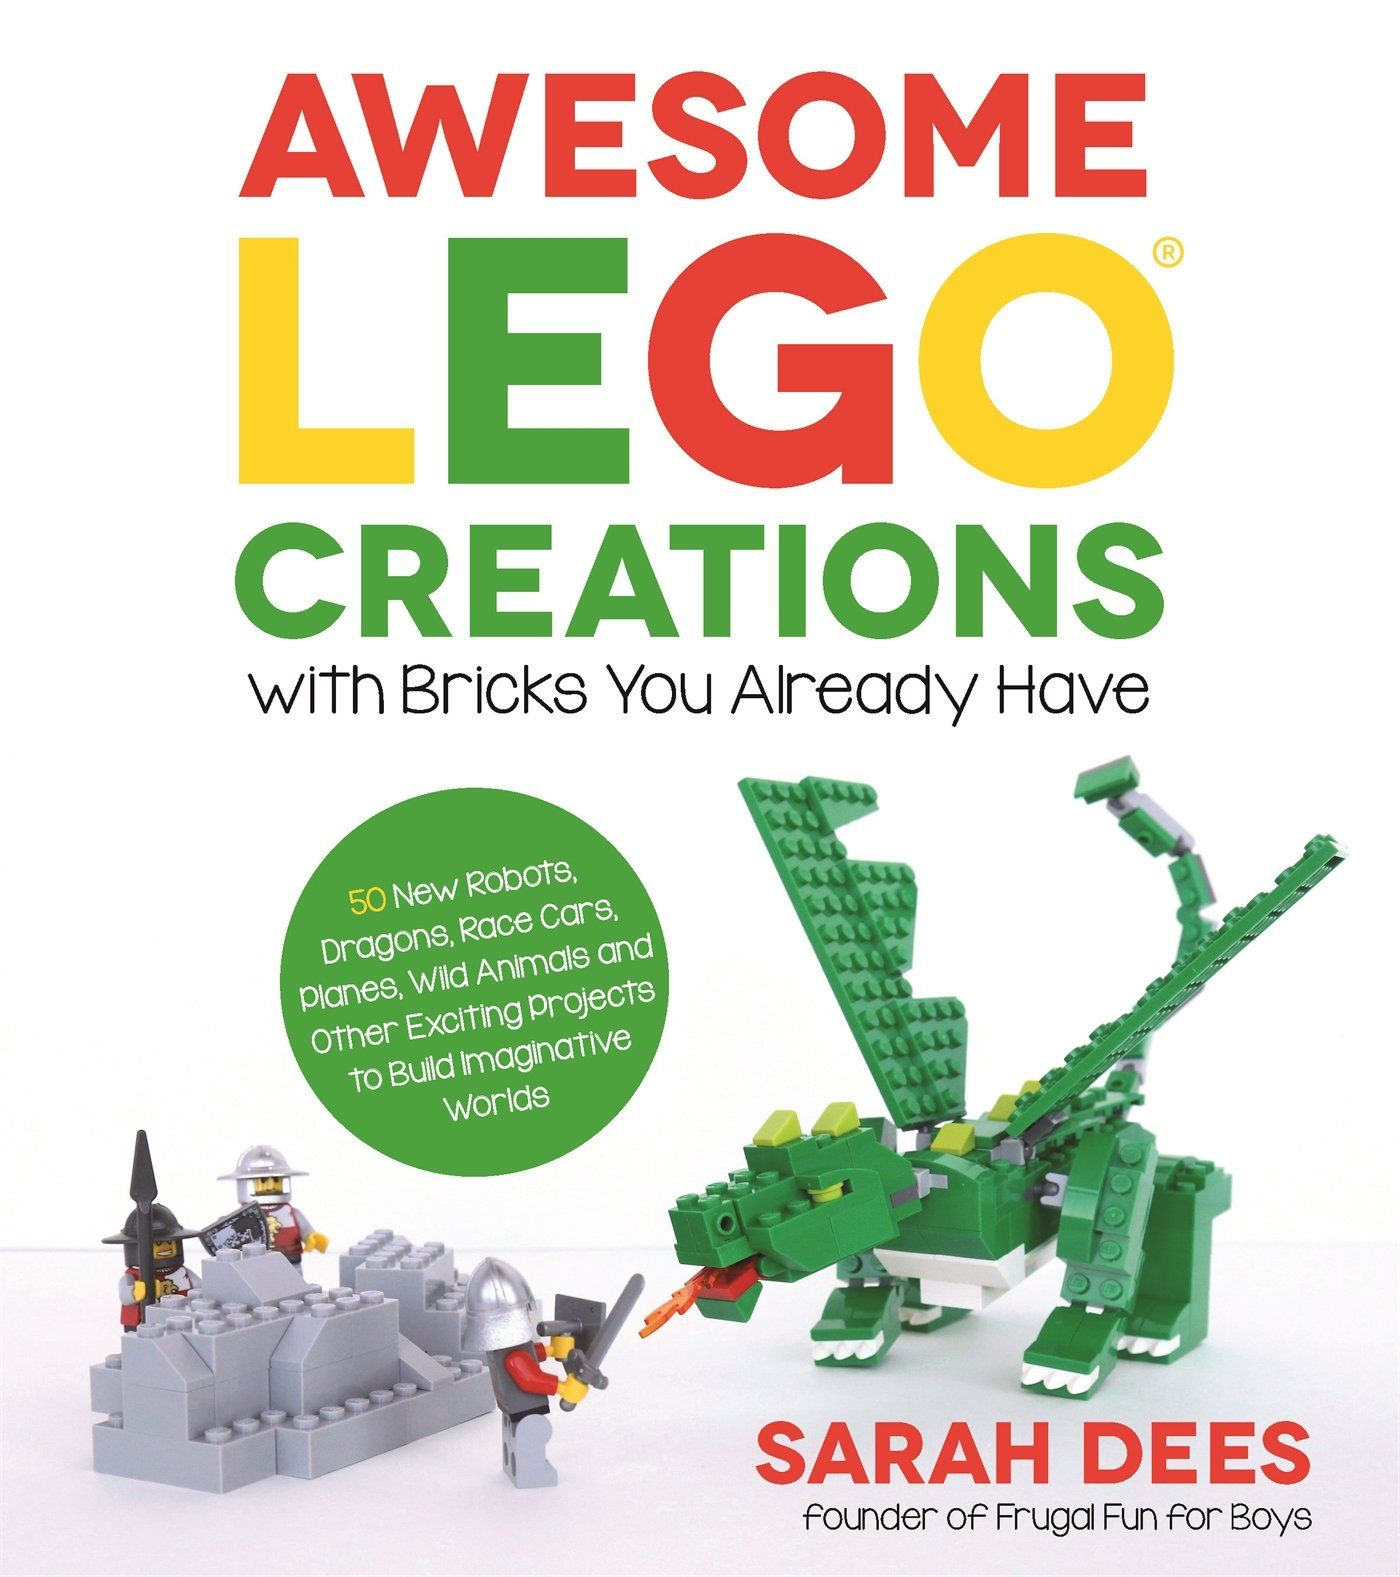 A Look Inside Awesome LEGO Creations with Bricks You Already Have ...